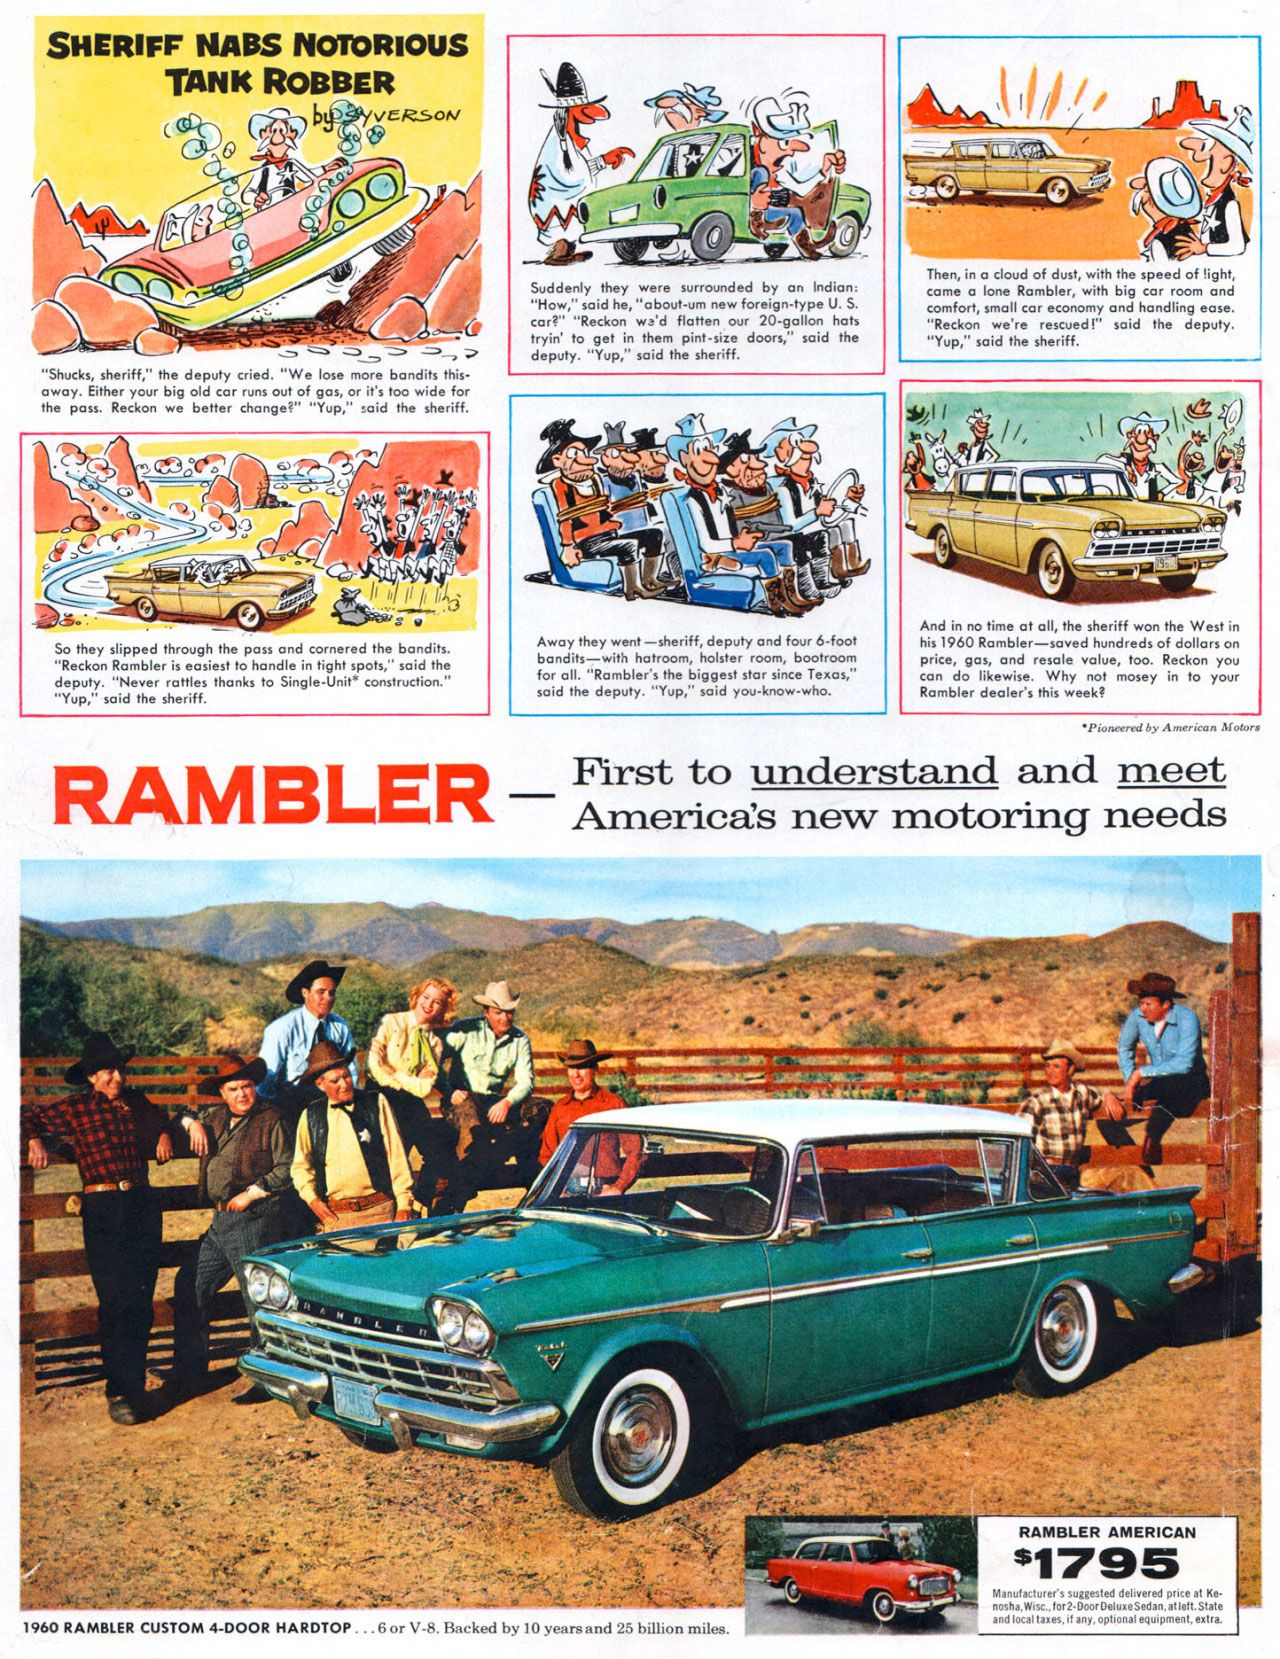 American Motors Rambler. The first car to understand and meet America's new motoring needs.